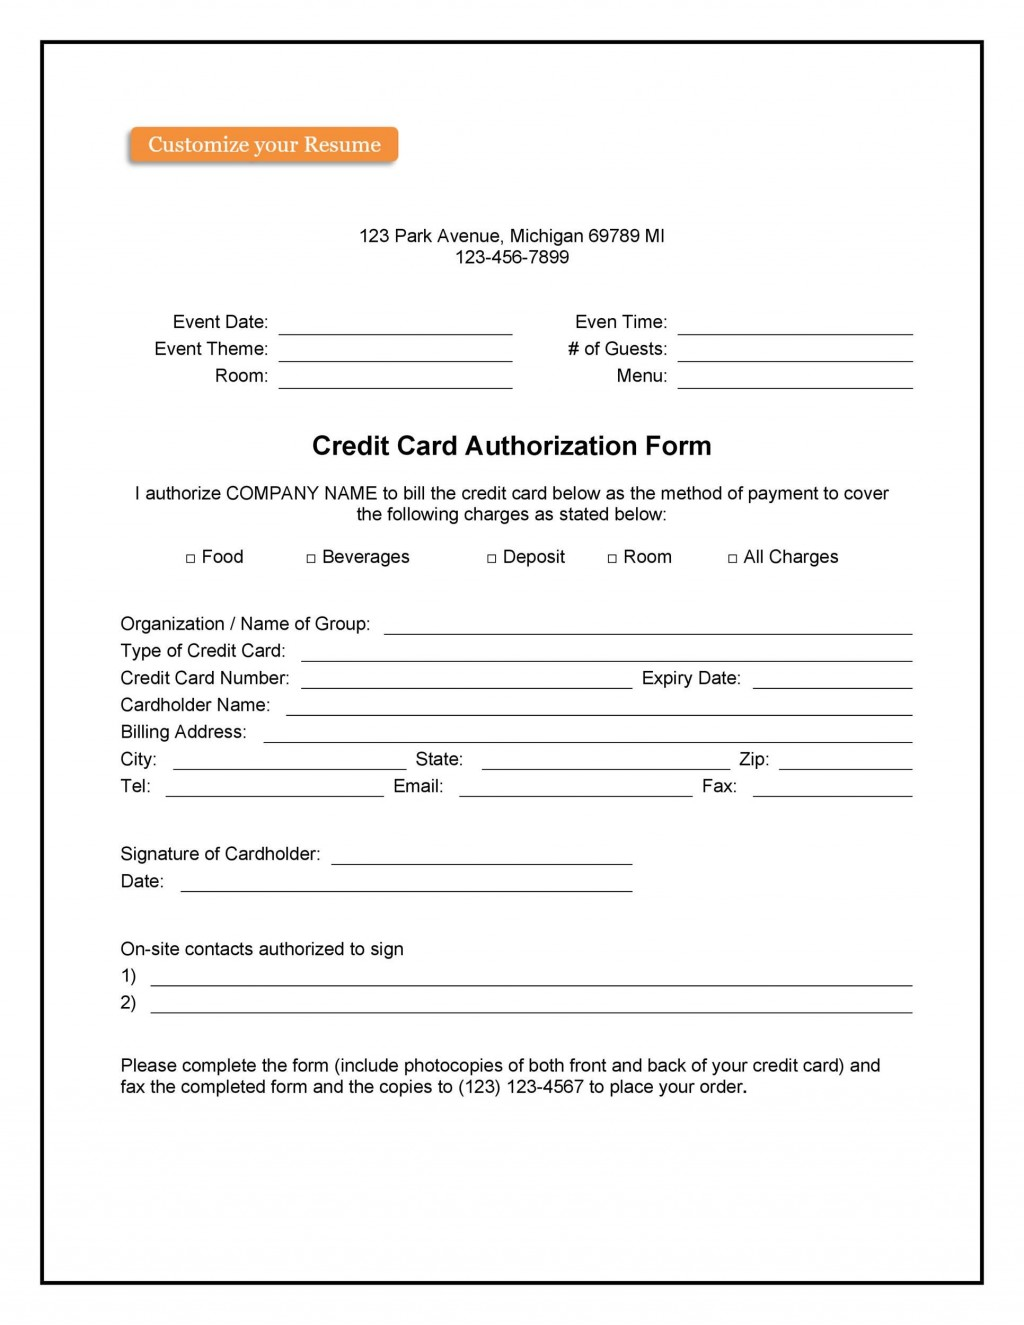 008 Marvelou One Time Credit Card Payment Authorization Form Template Highest Clarity Large